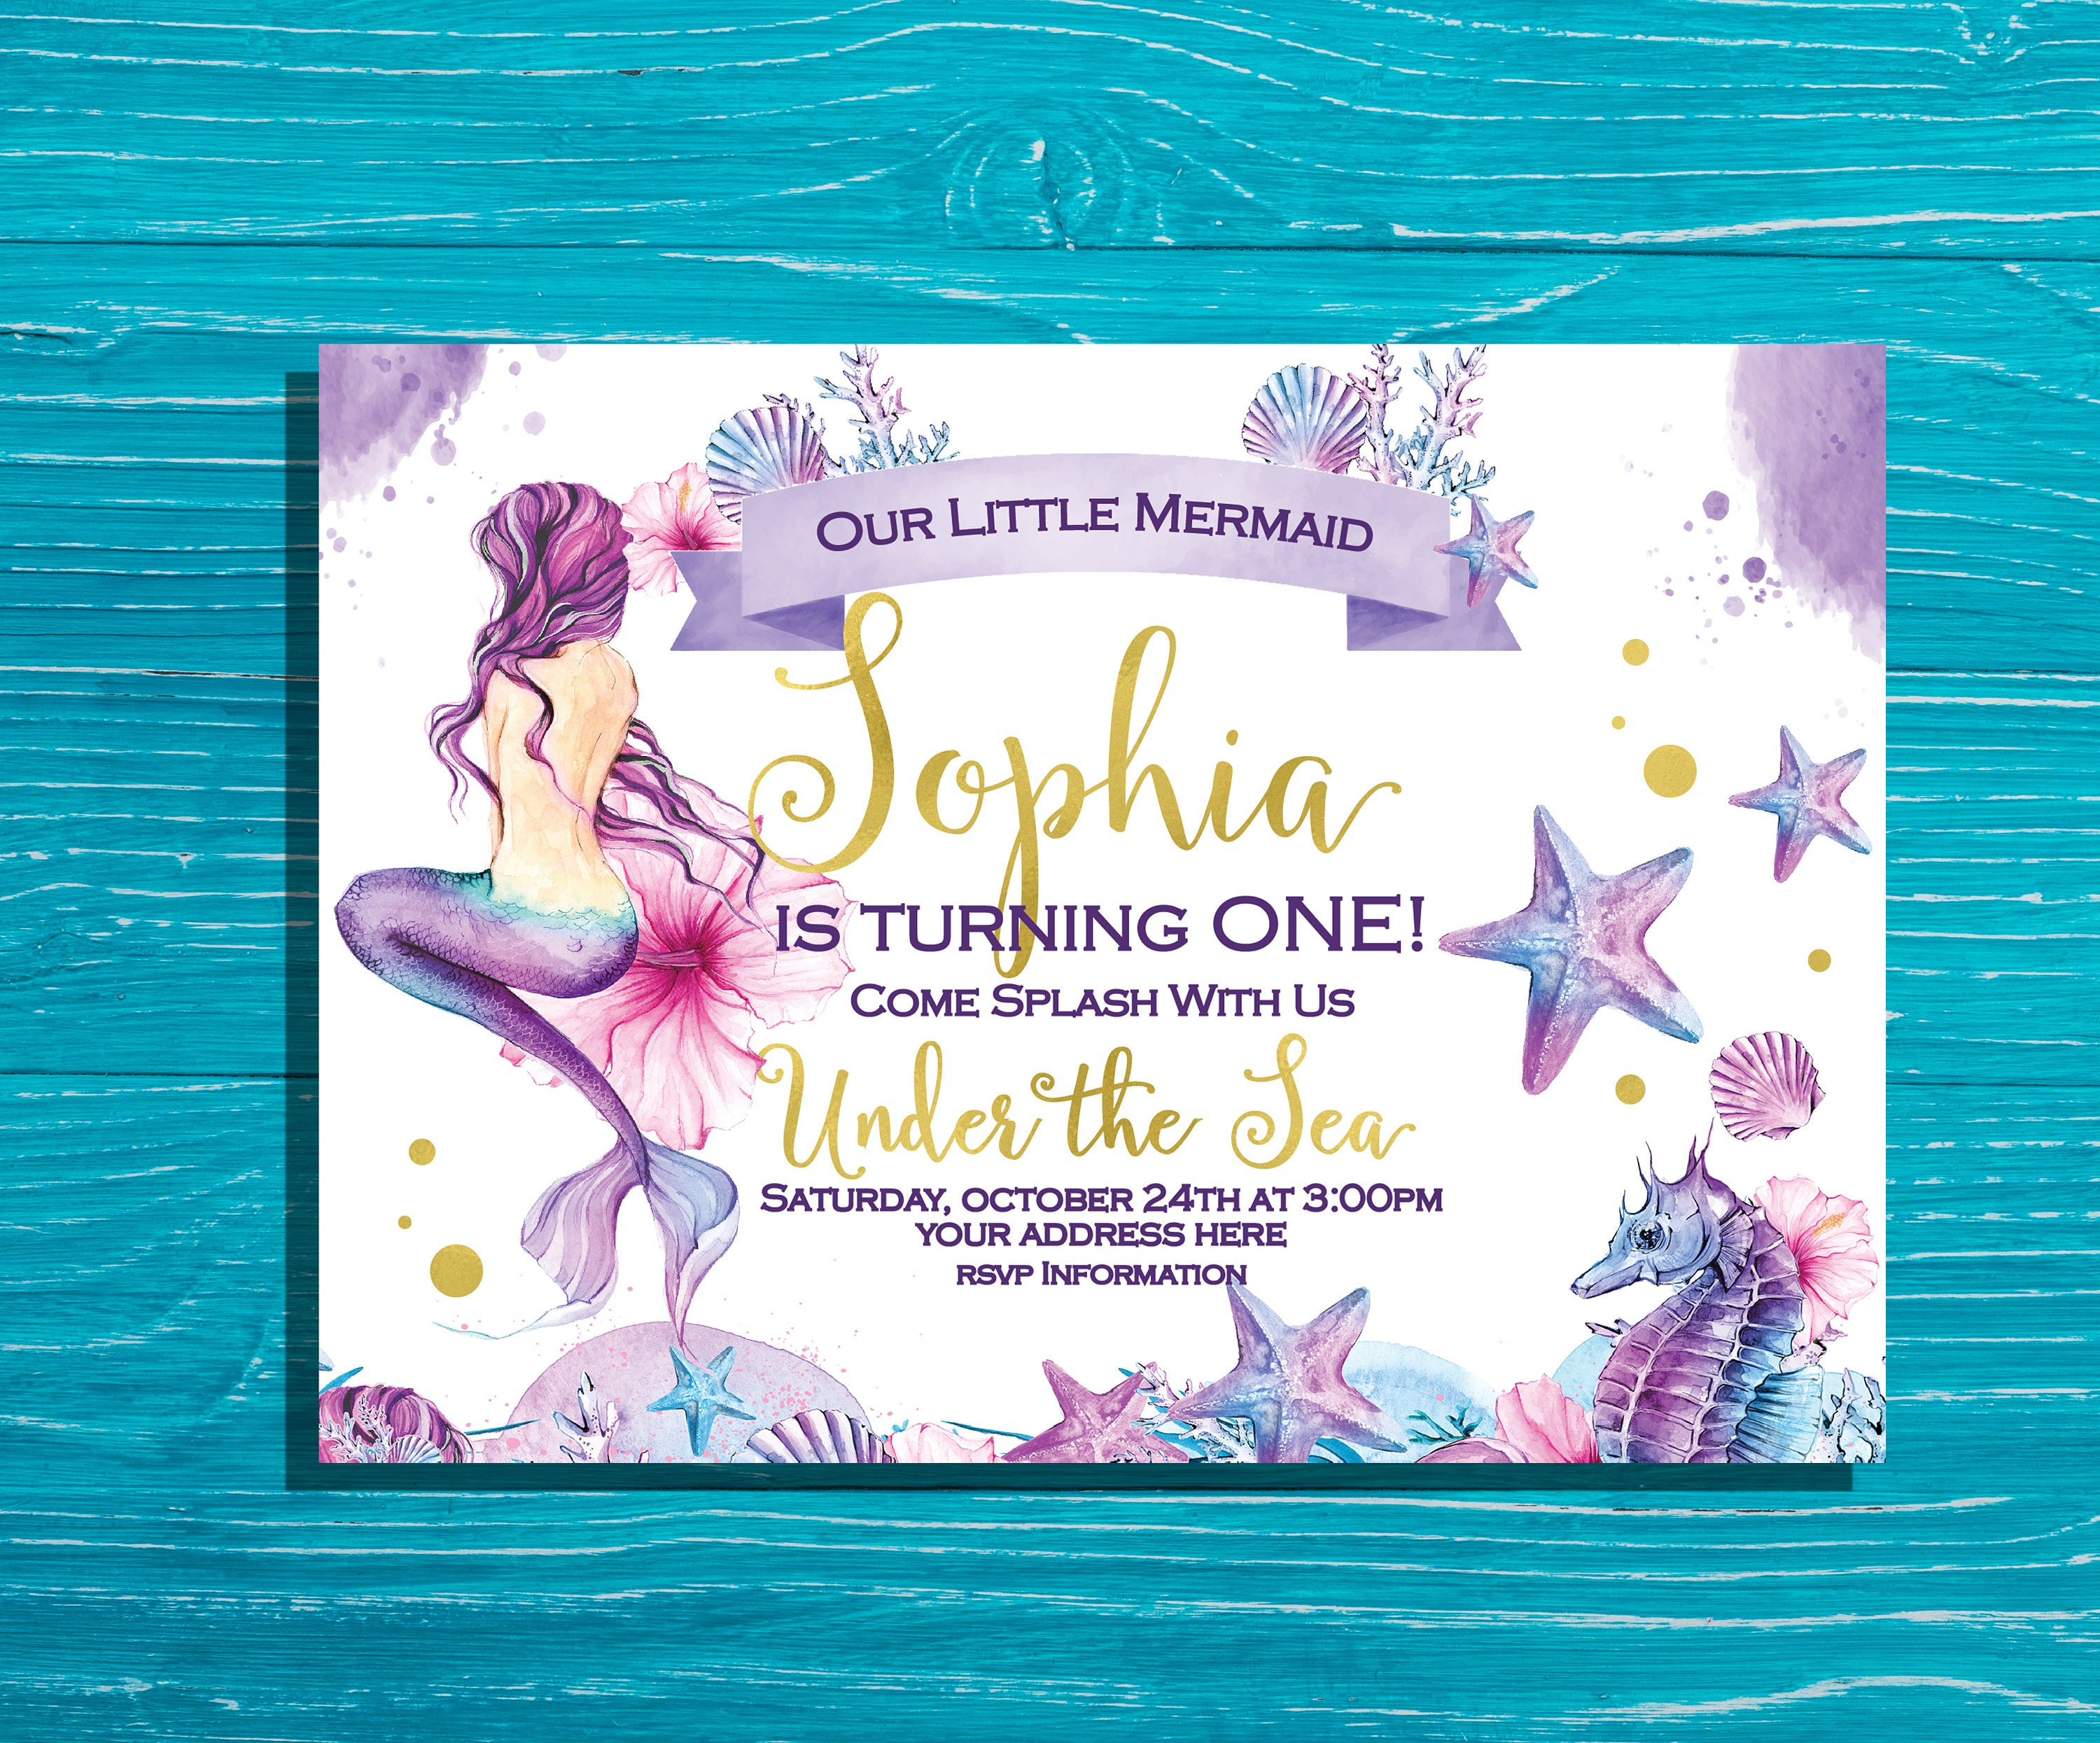 Mermaid Birthday Invitation Under the Sea Party Invitation | Etsy